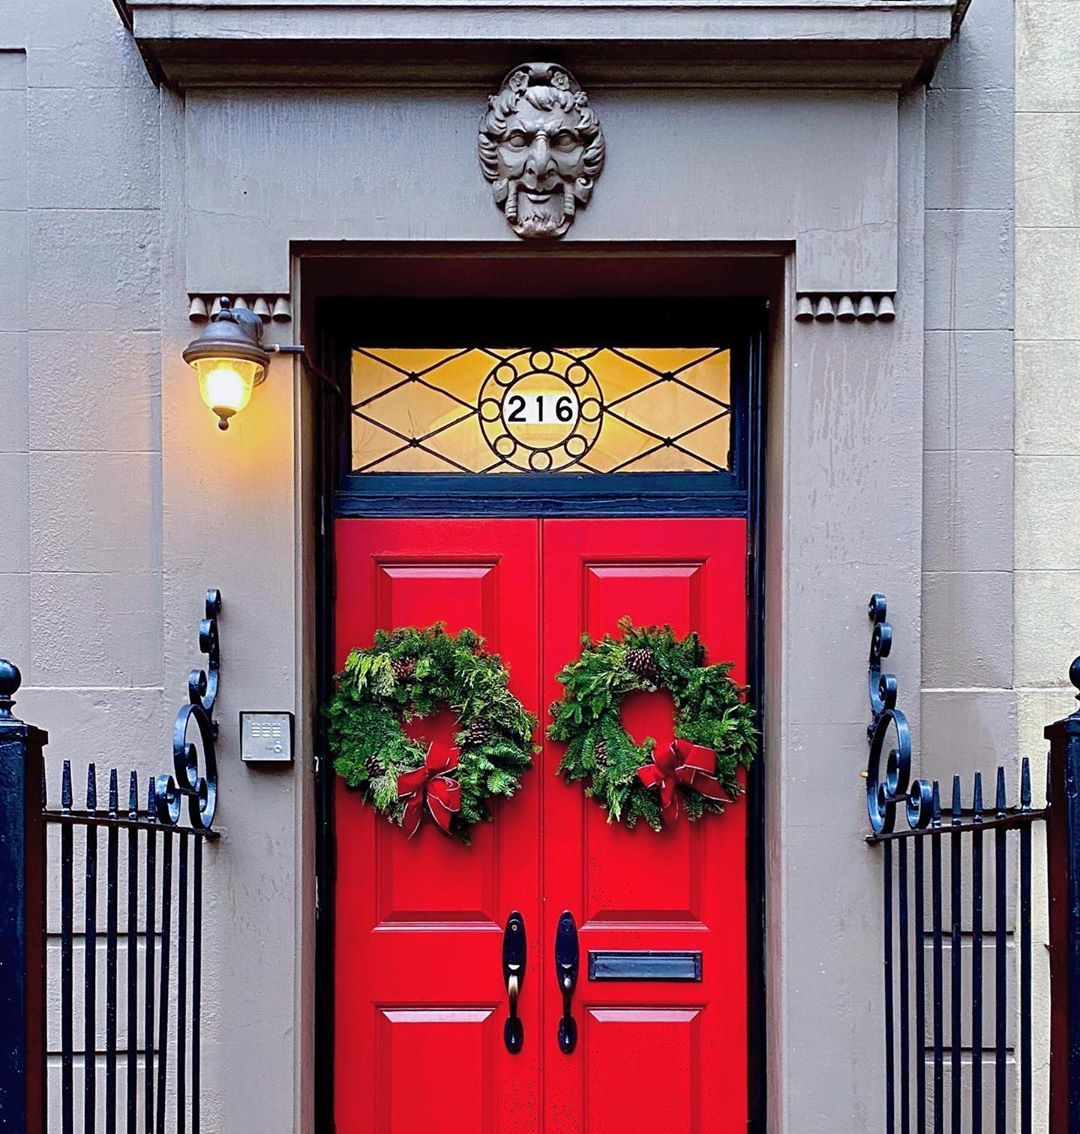 """Laurel Benedum on Instagram: """"All I want for Christmas is an UES townhouse. 🎅🏻 #ihavethisthingwithdoors #christmasinnewyork 🎄🚖✨"""""""